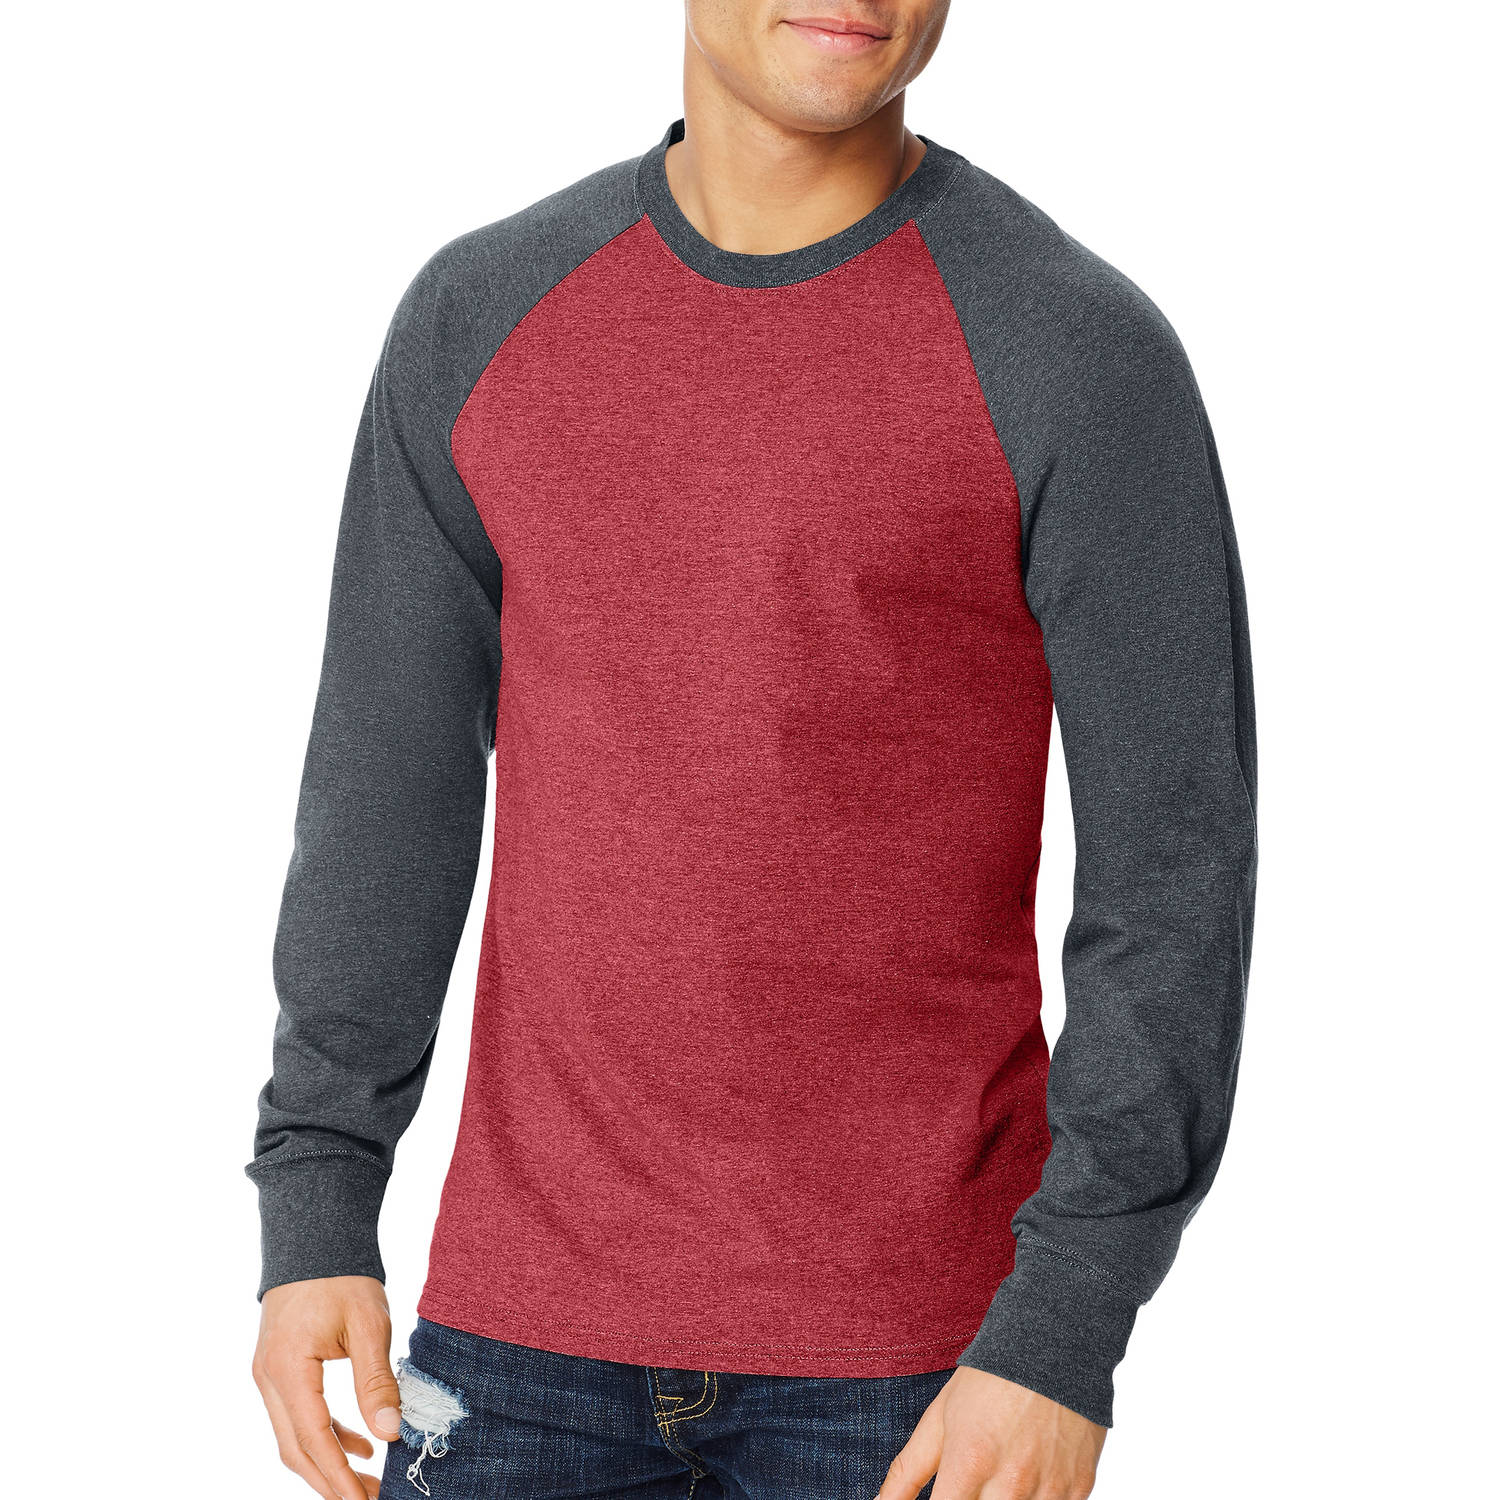 Hanes Men's X-temp Long Sleeve Colorblock Raglan T-shirt